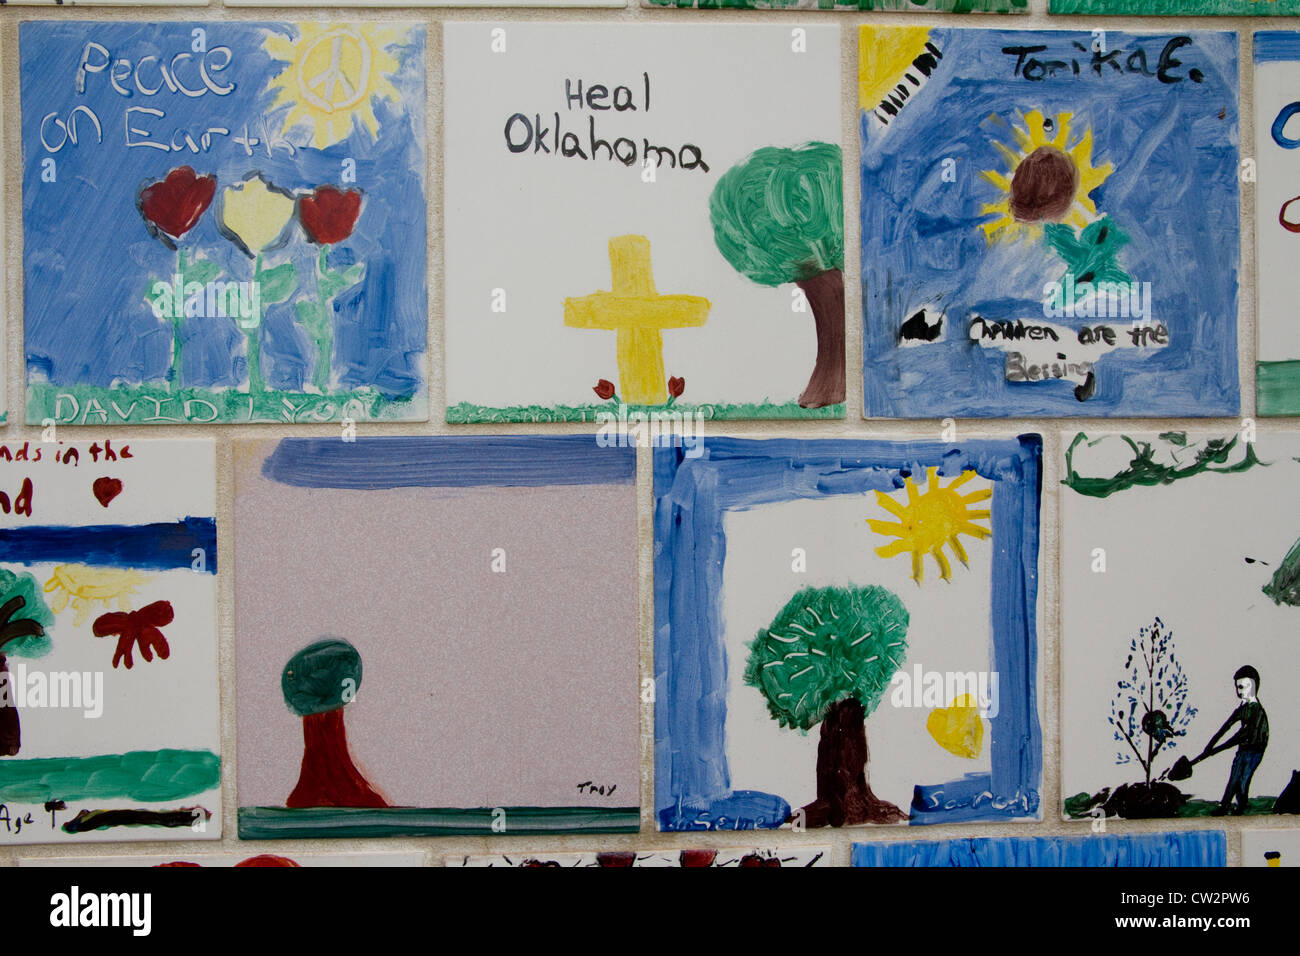 Wall of hand-painted tiles, Chidren's Area, Oklahoma National Memorial & Museum, in memory of tragic 1995 - Stock Image